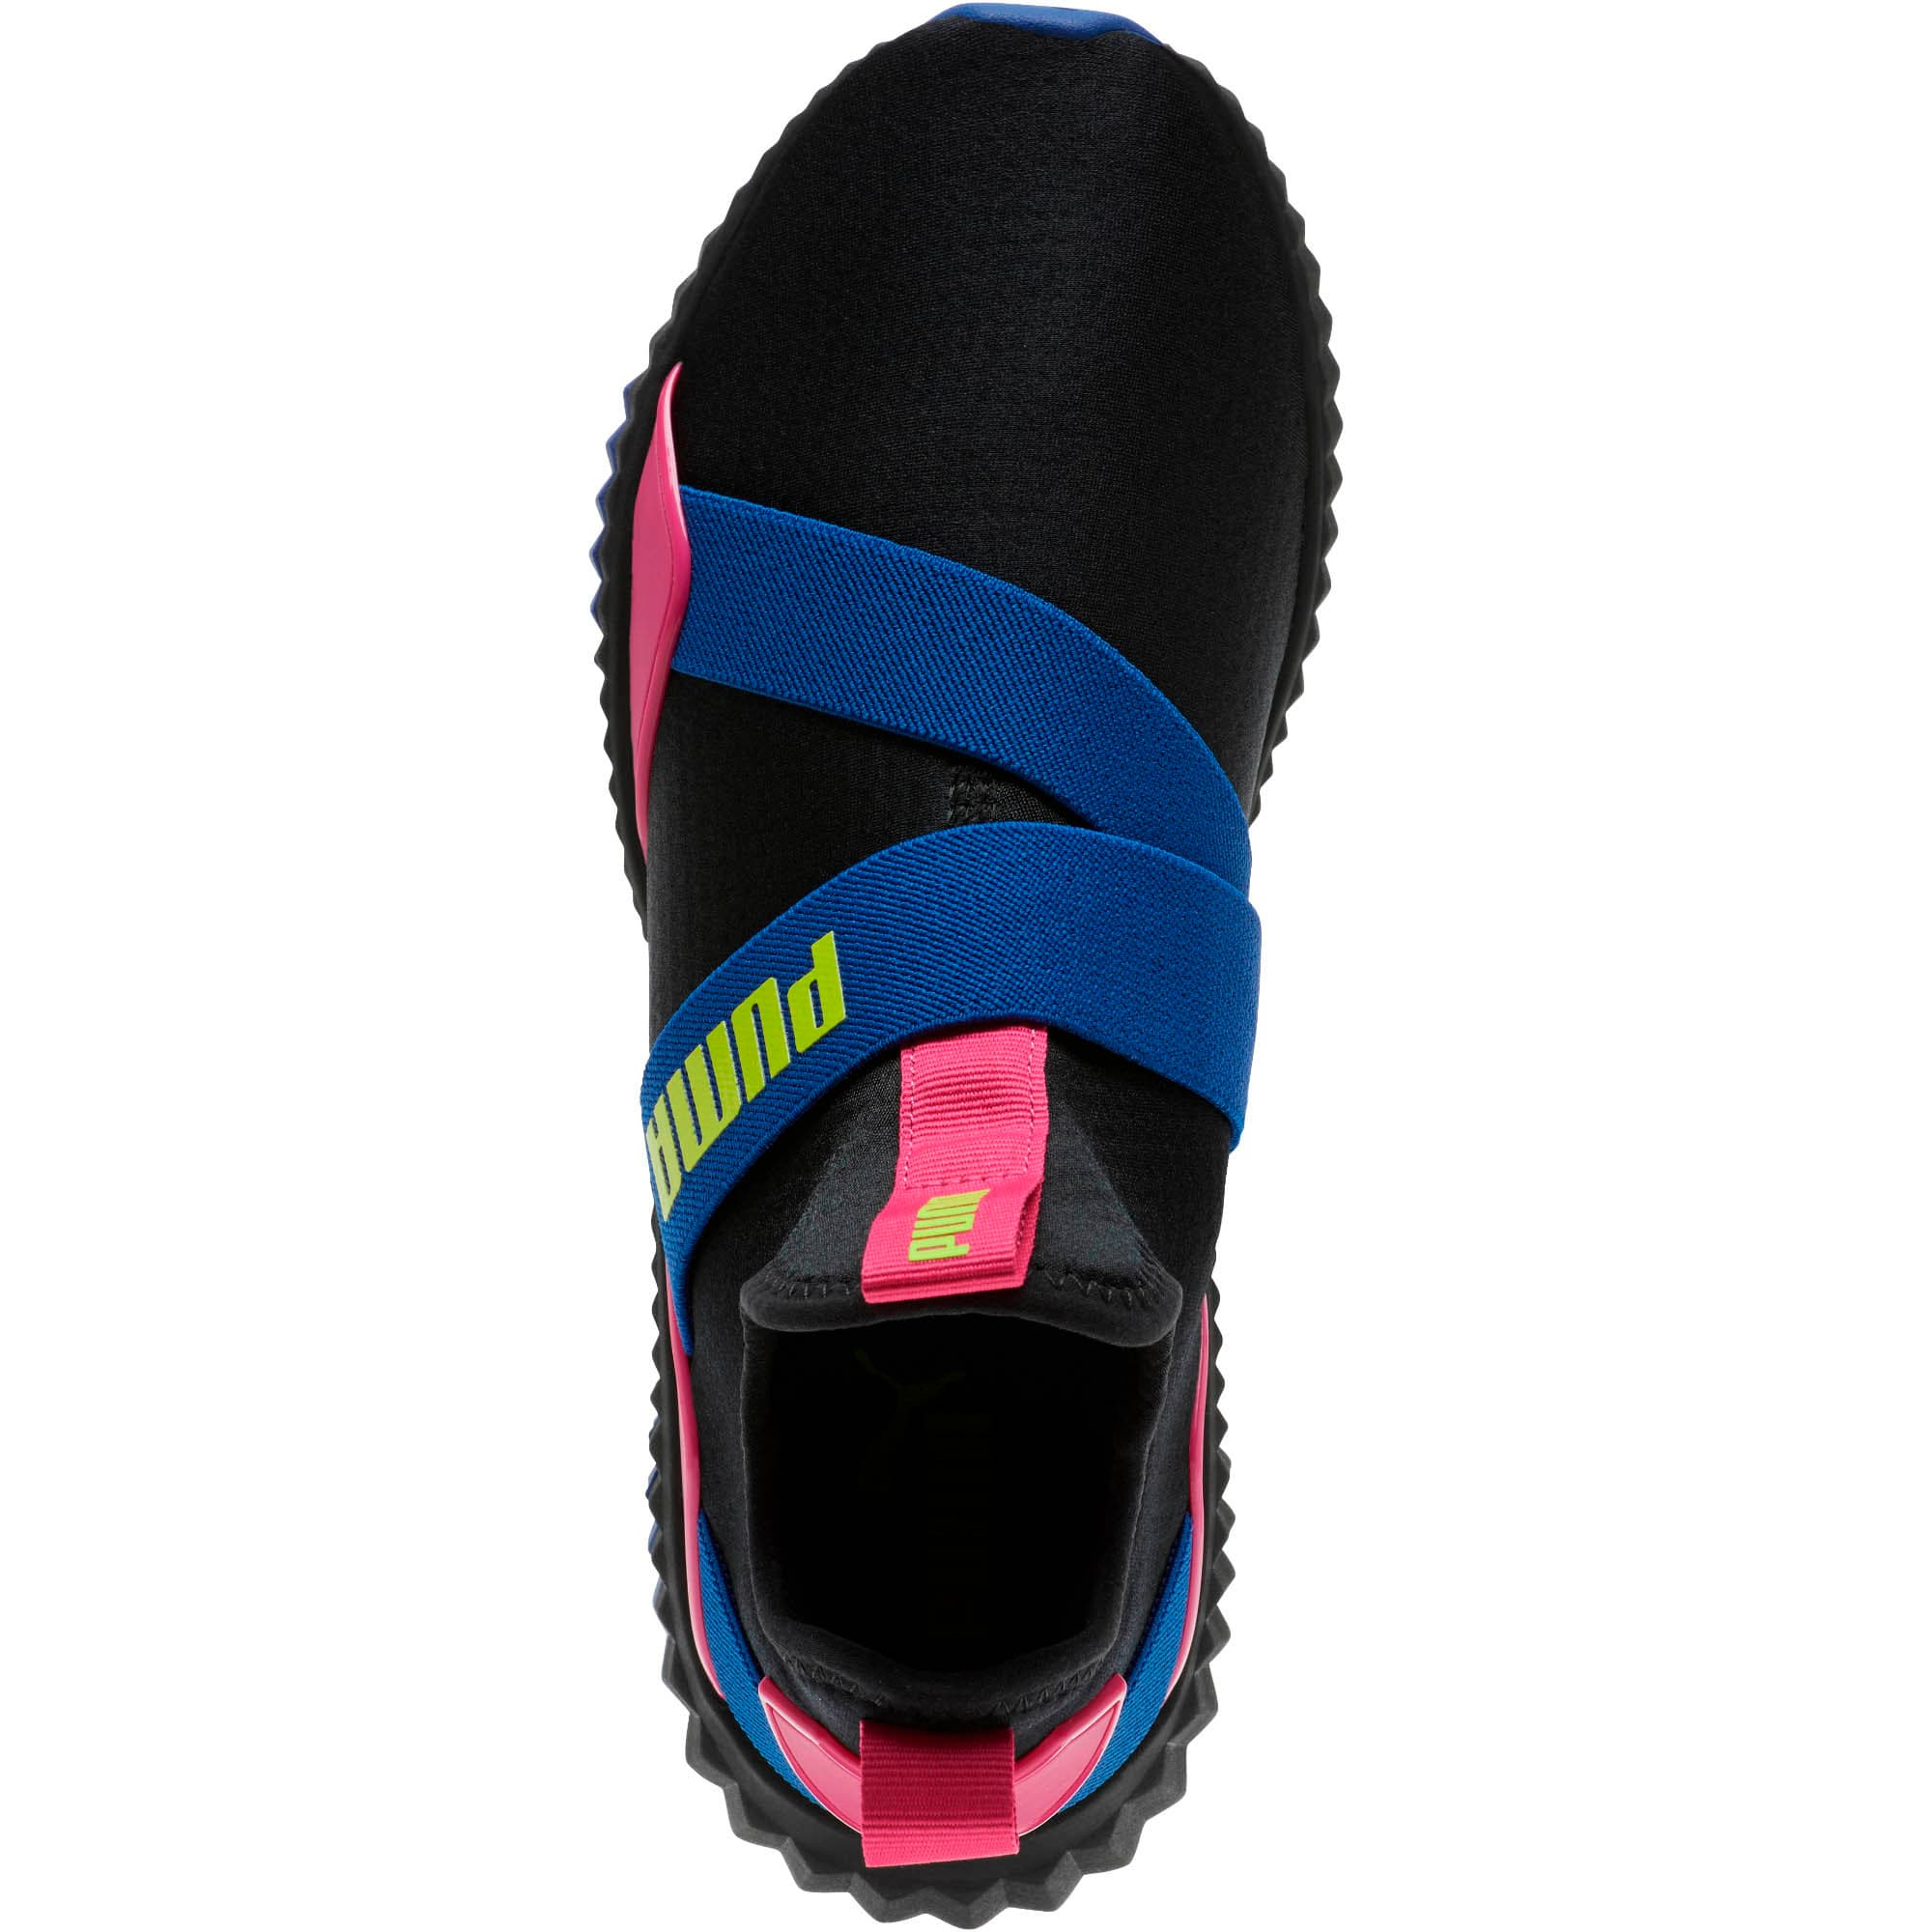 Defy Mid 90s Women's Training Shoes, Puma Black-Surf The Web, large